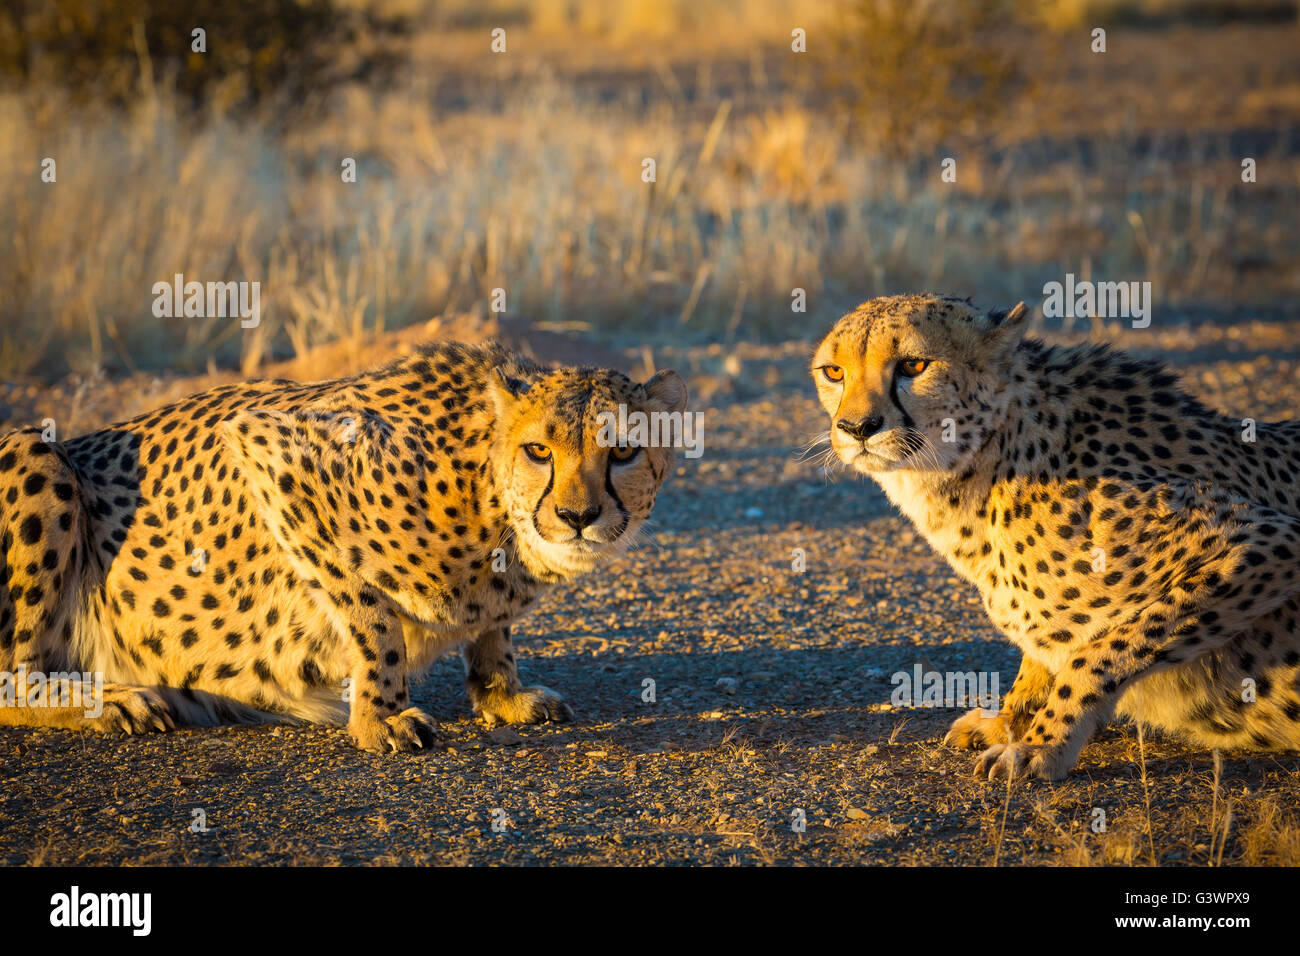 The cheetah (Acinonyx jubatus) is a big cat that occurs mainly in eastern and southern Africa. - Stock Image